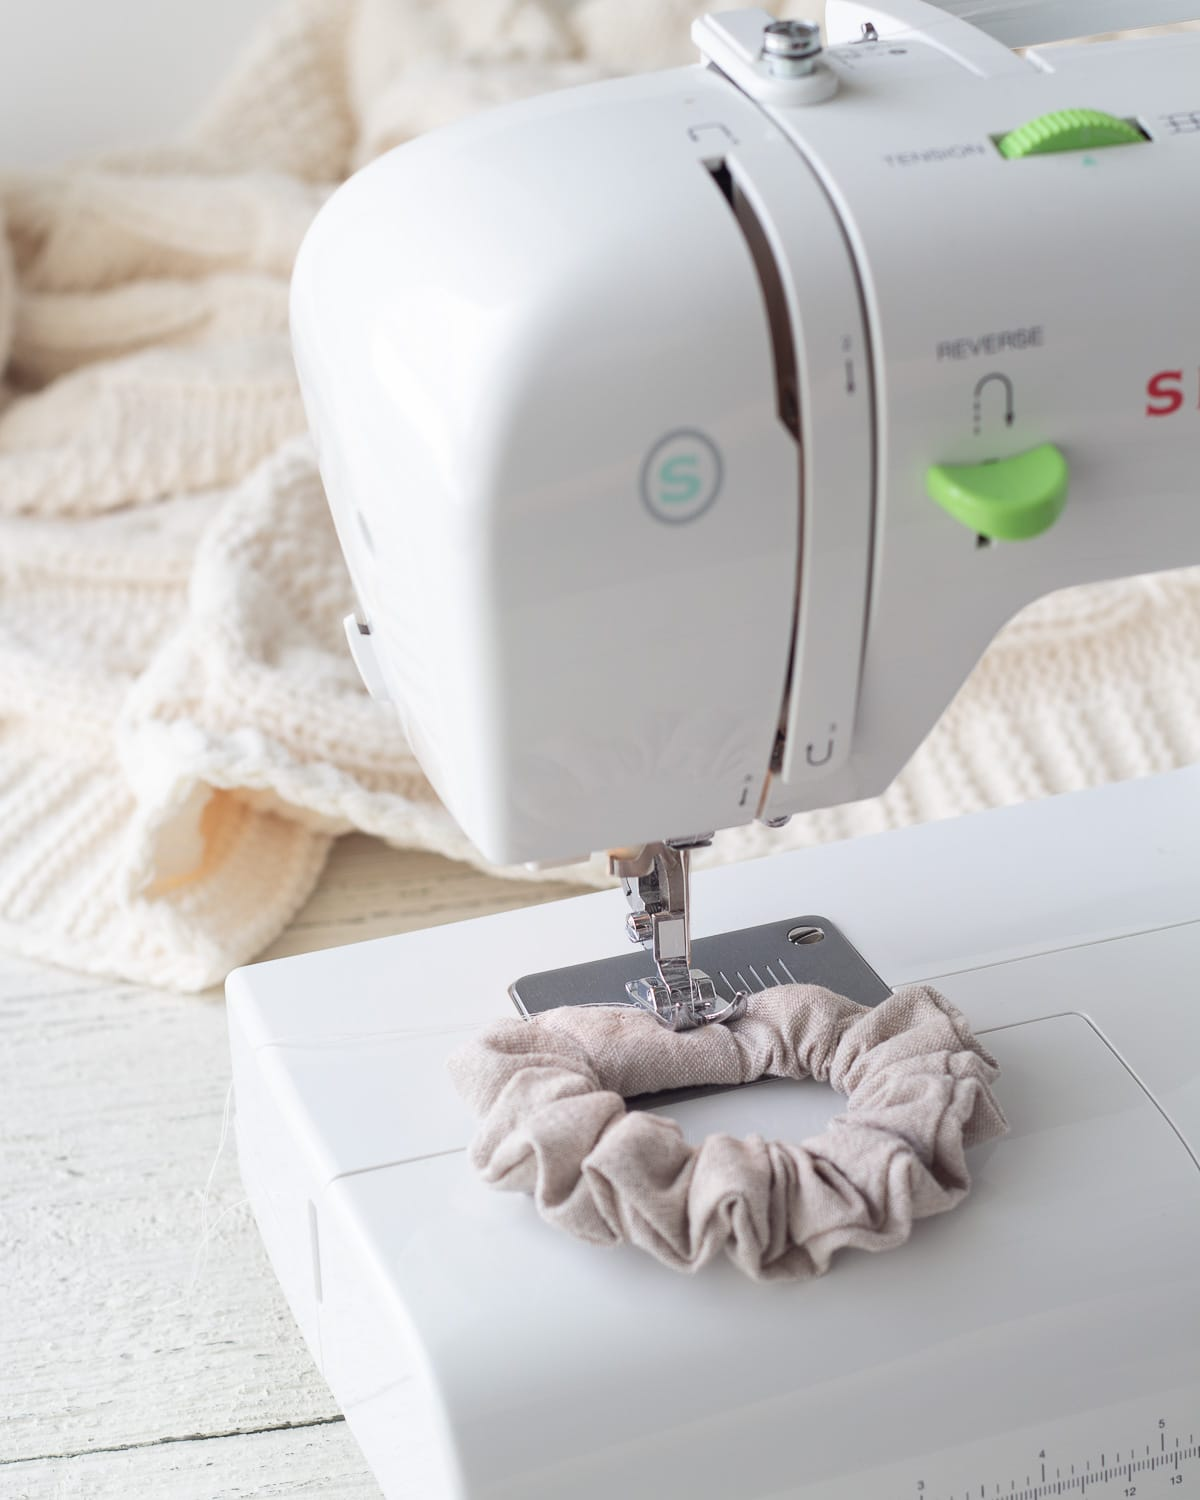 Stitching the final seam on a scrunchie with a sewing machine.